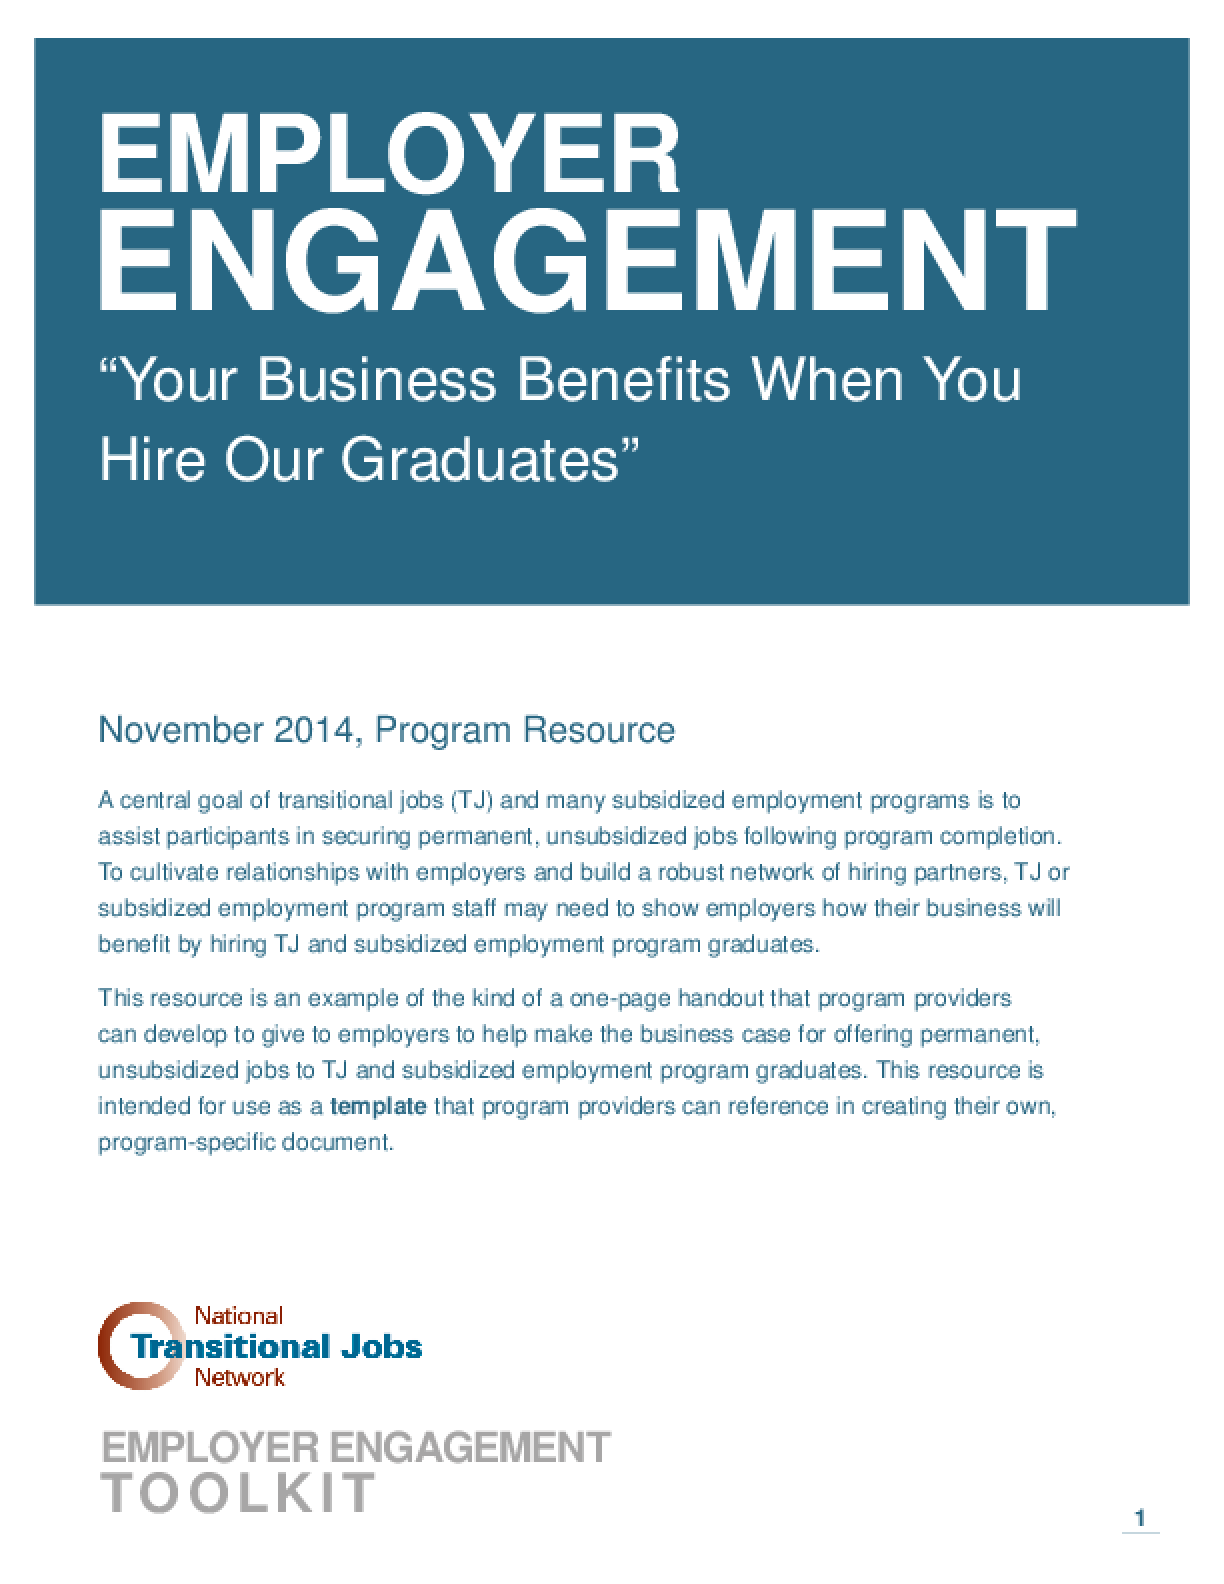 Employer Engagement: Your Business Benefits When You Hire Our Graduates